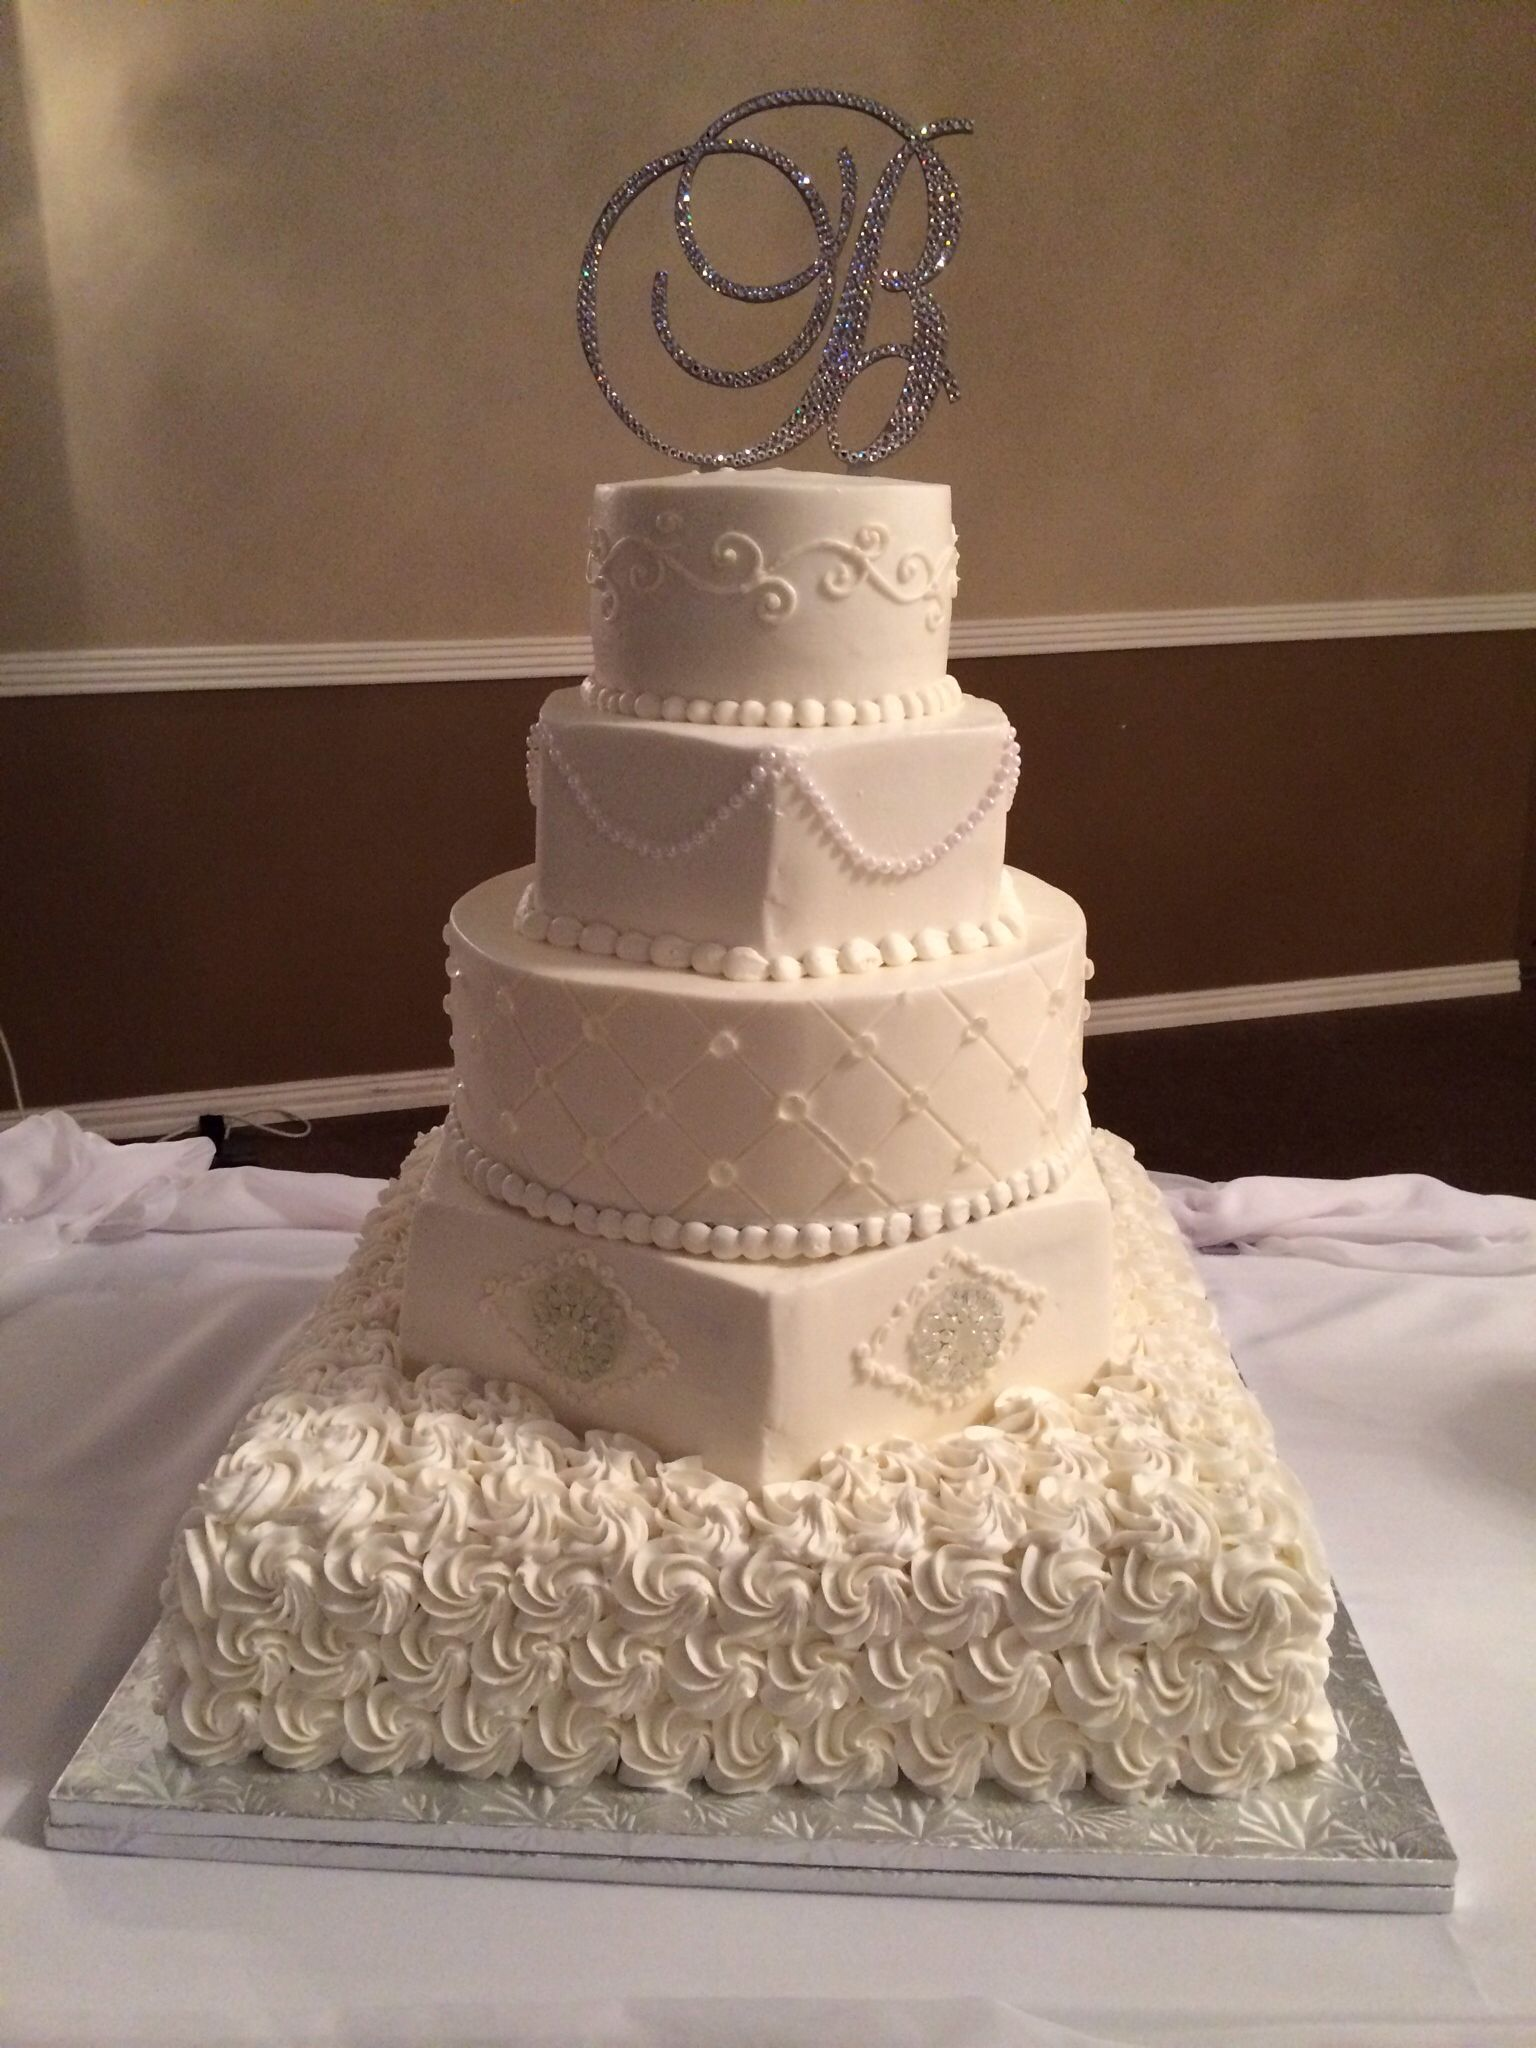 Beautiful White Cake With A Bling Monogram On Top Bowdenwedding Preciselyasplanned